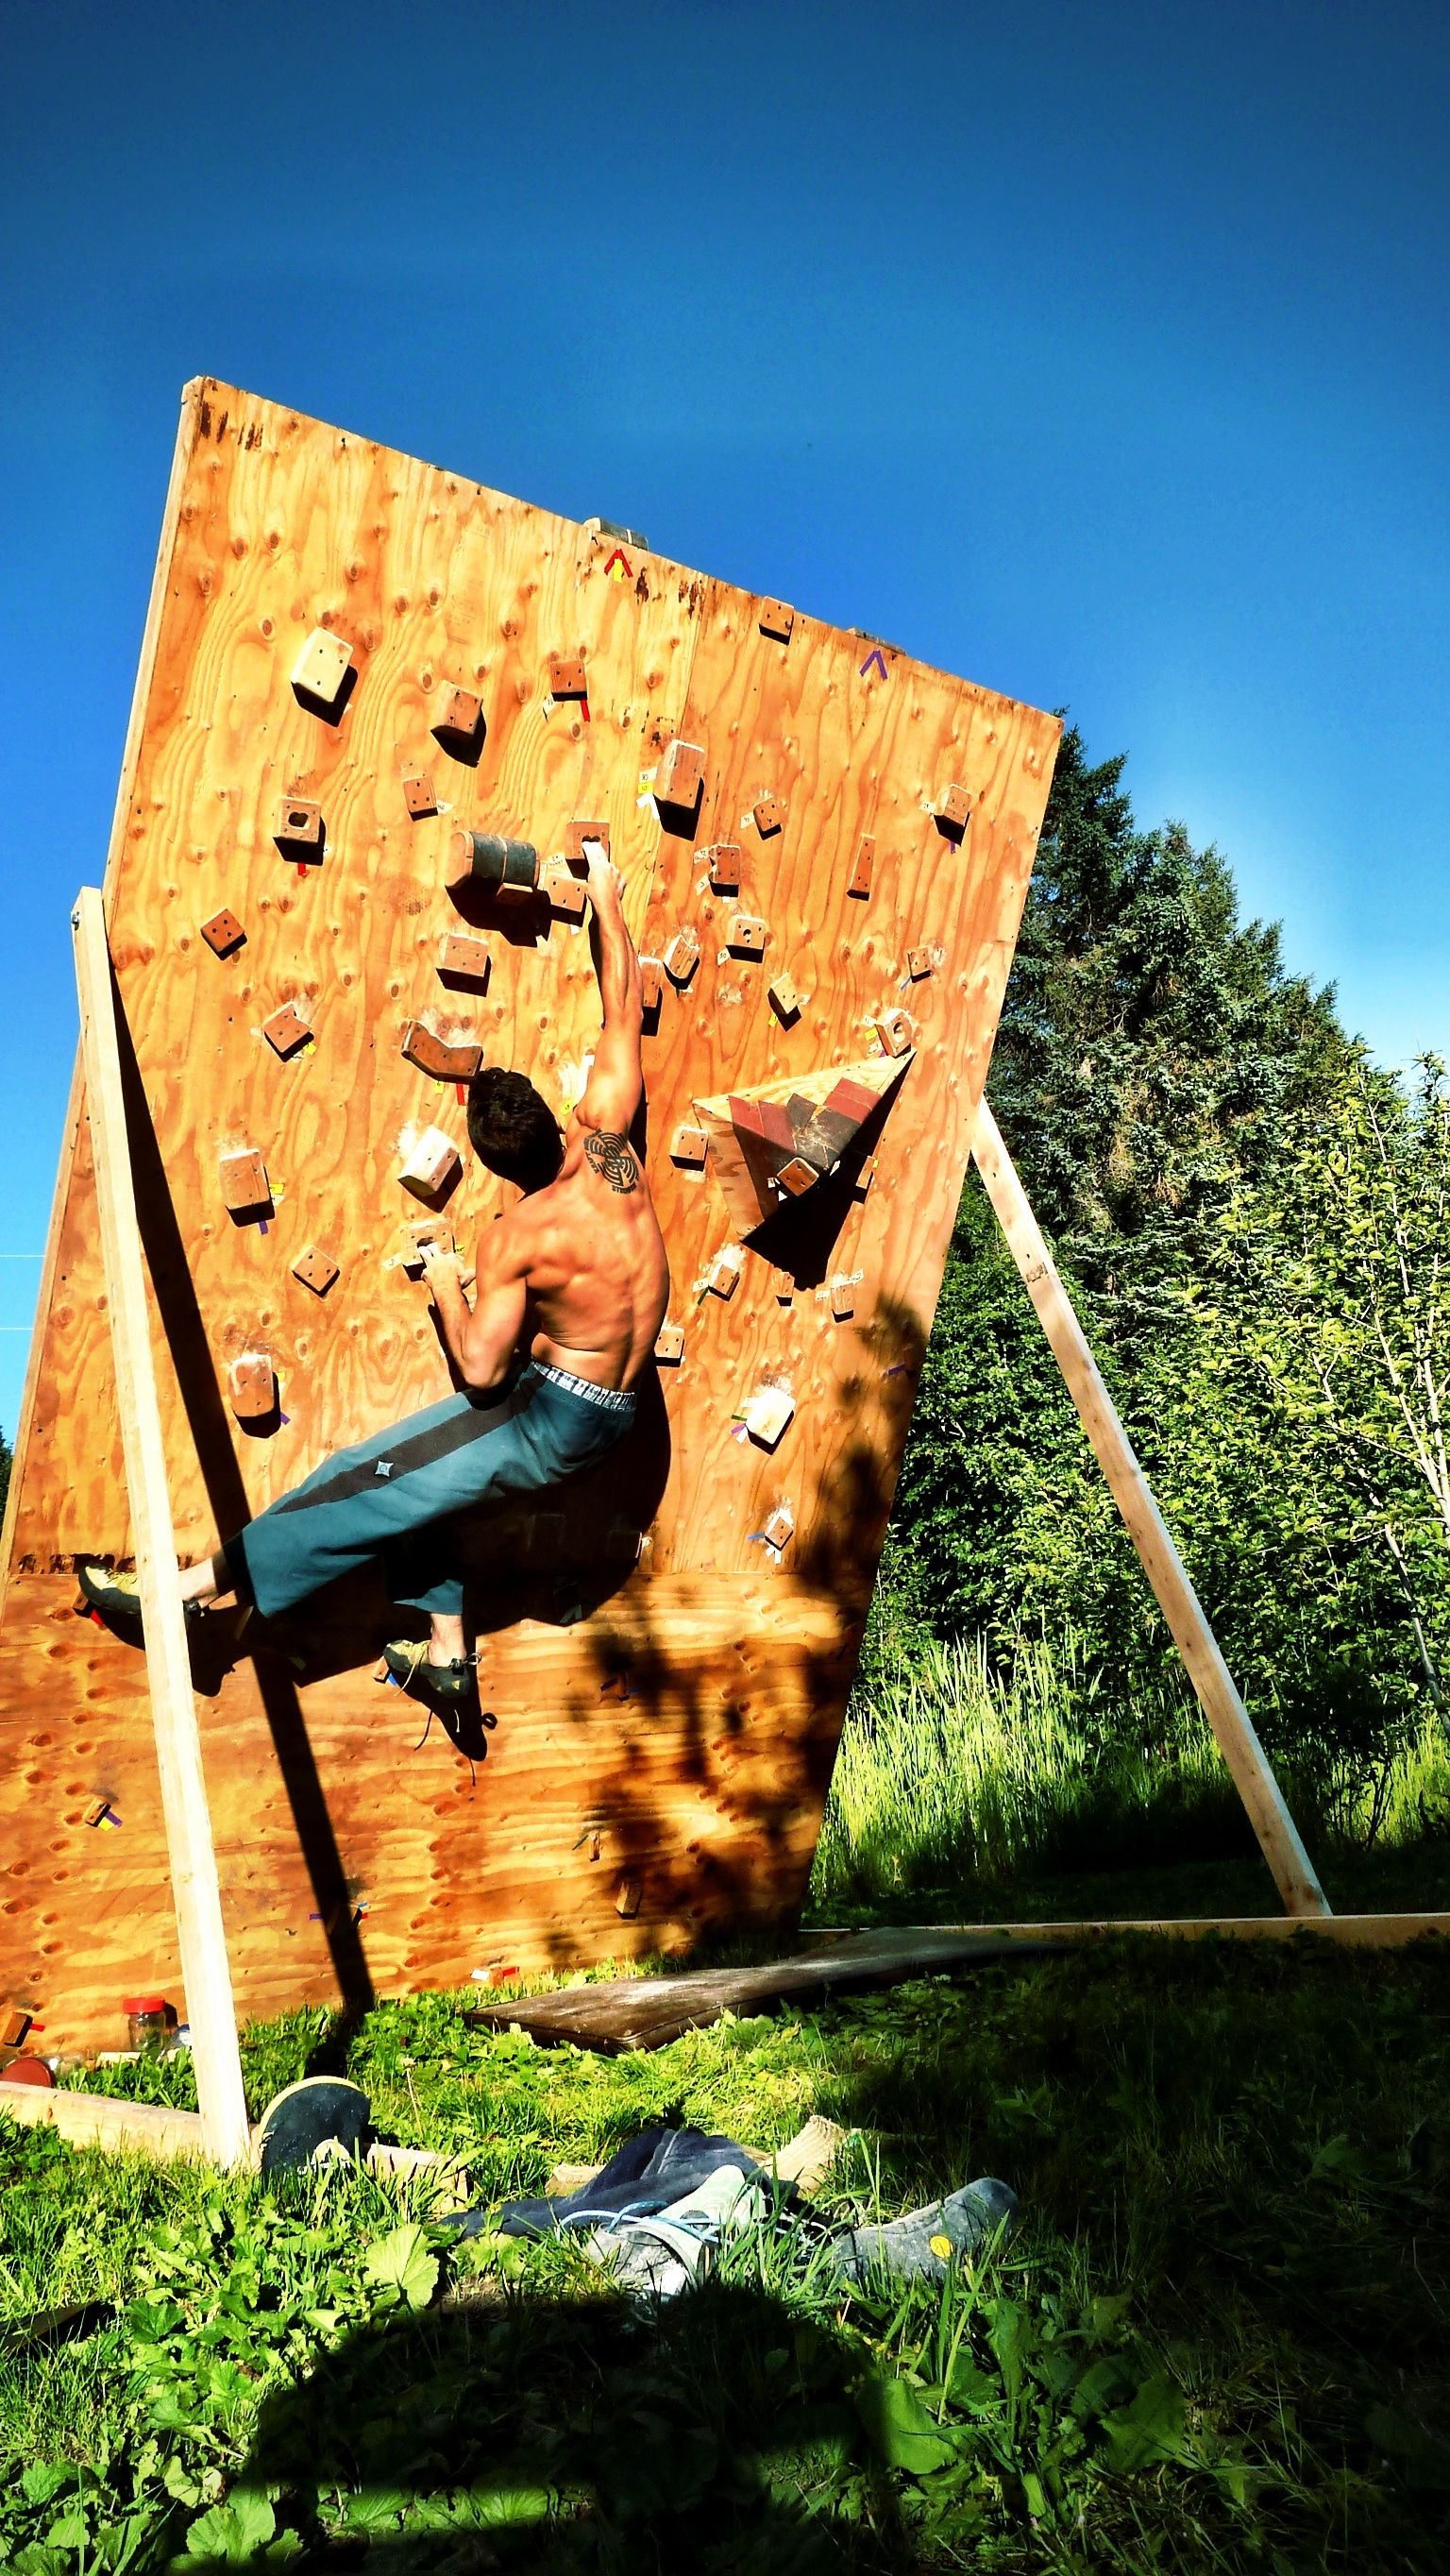 My Man On His Homemade Bouldering Wall Home Climbing Wall Diy Climbing Wall Rock Climbing Wall